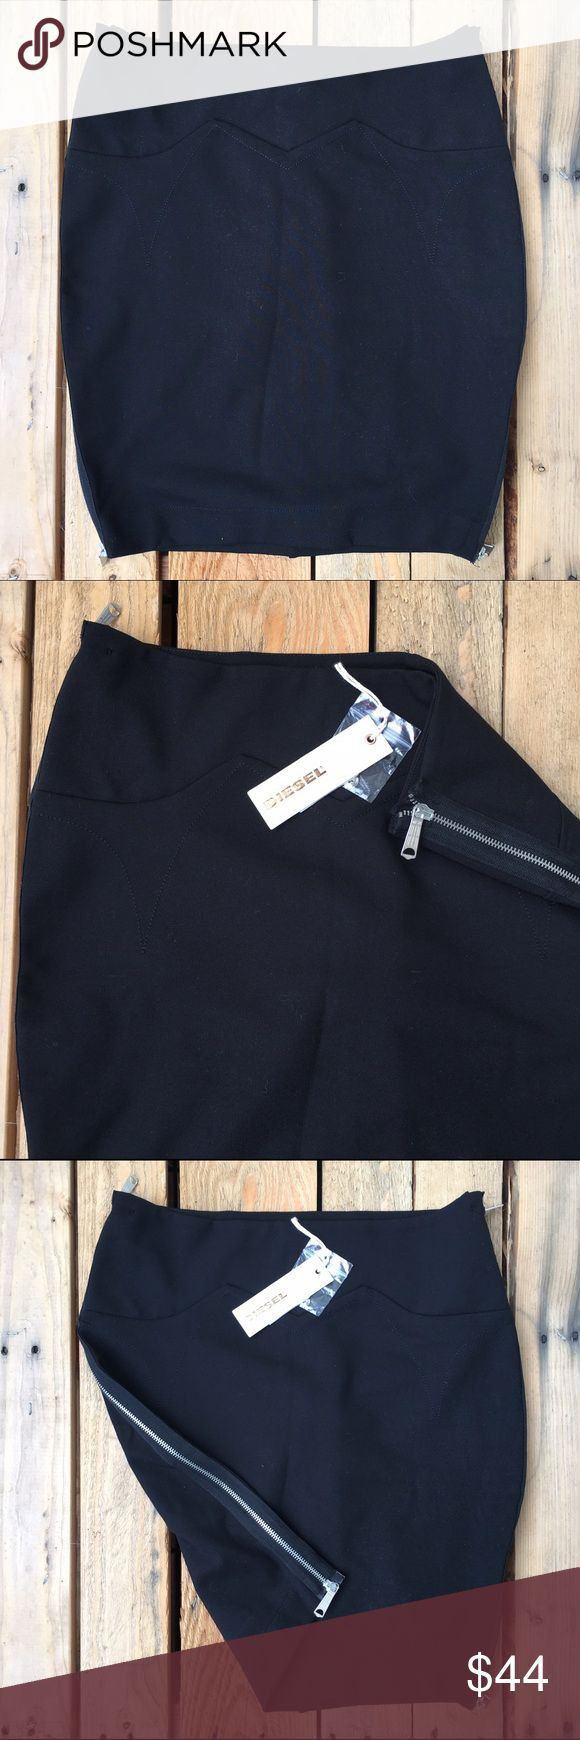 Diesel Stretch Zipper Mini Skirt Brand new with tags. Thick stretch fabric with zippers on both sides. The zippers also come down either from the top or the bottom. Has cool zig zag design waistline and stitching. Diesel Skirts Mini